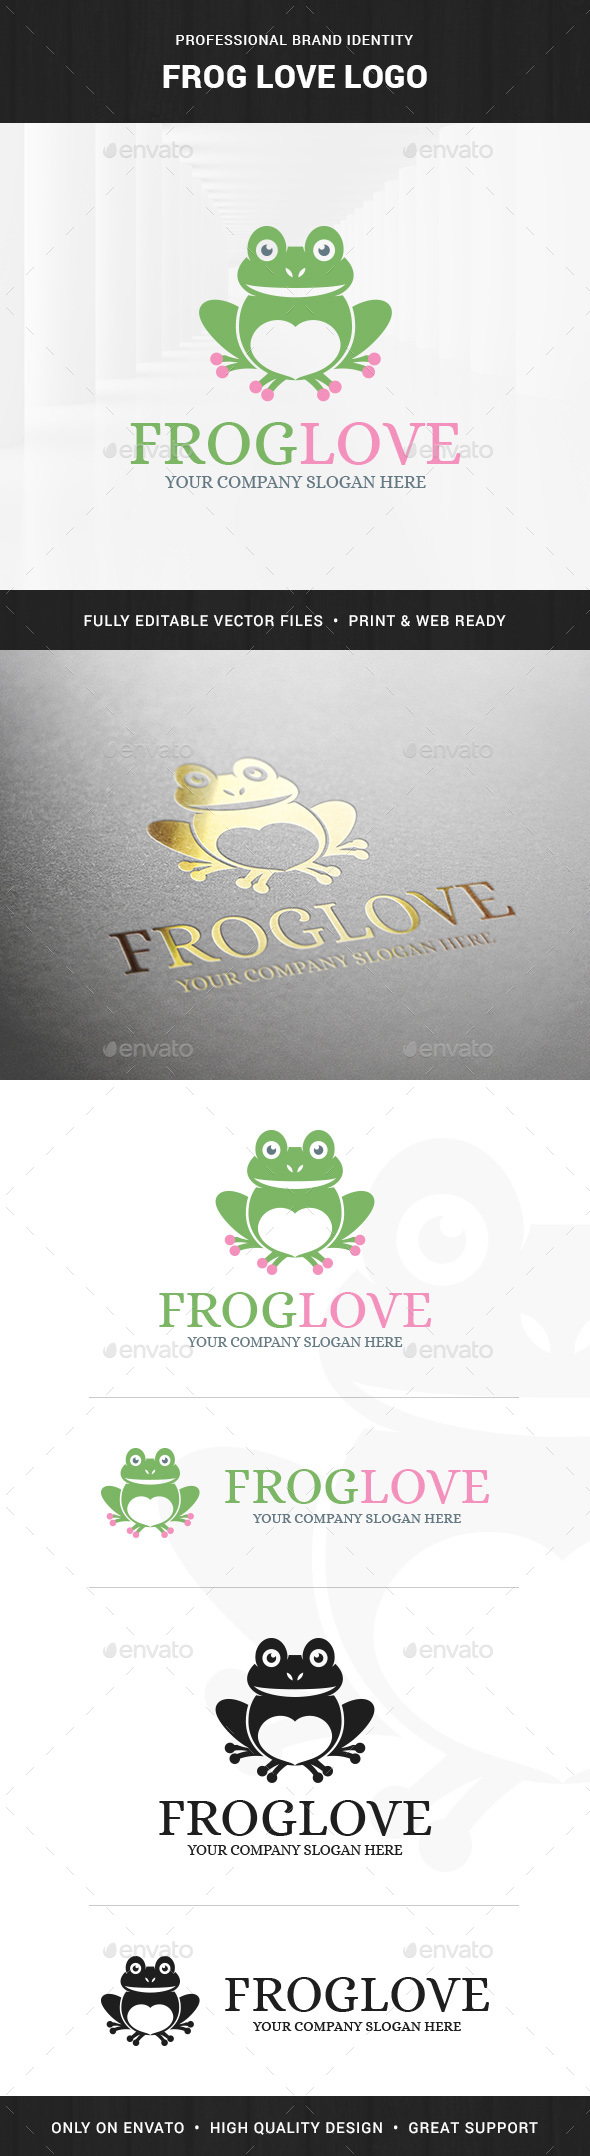 Frog Love Logo Template - Animals Logo Templates